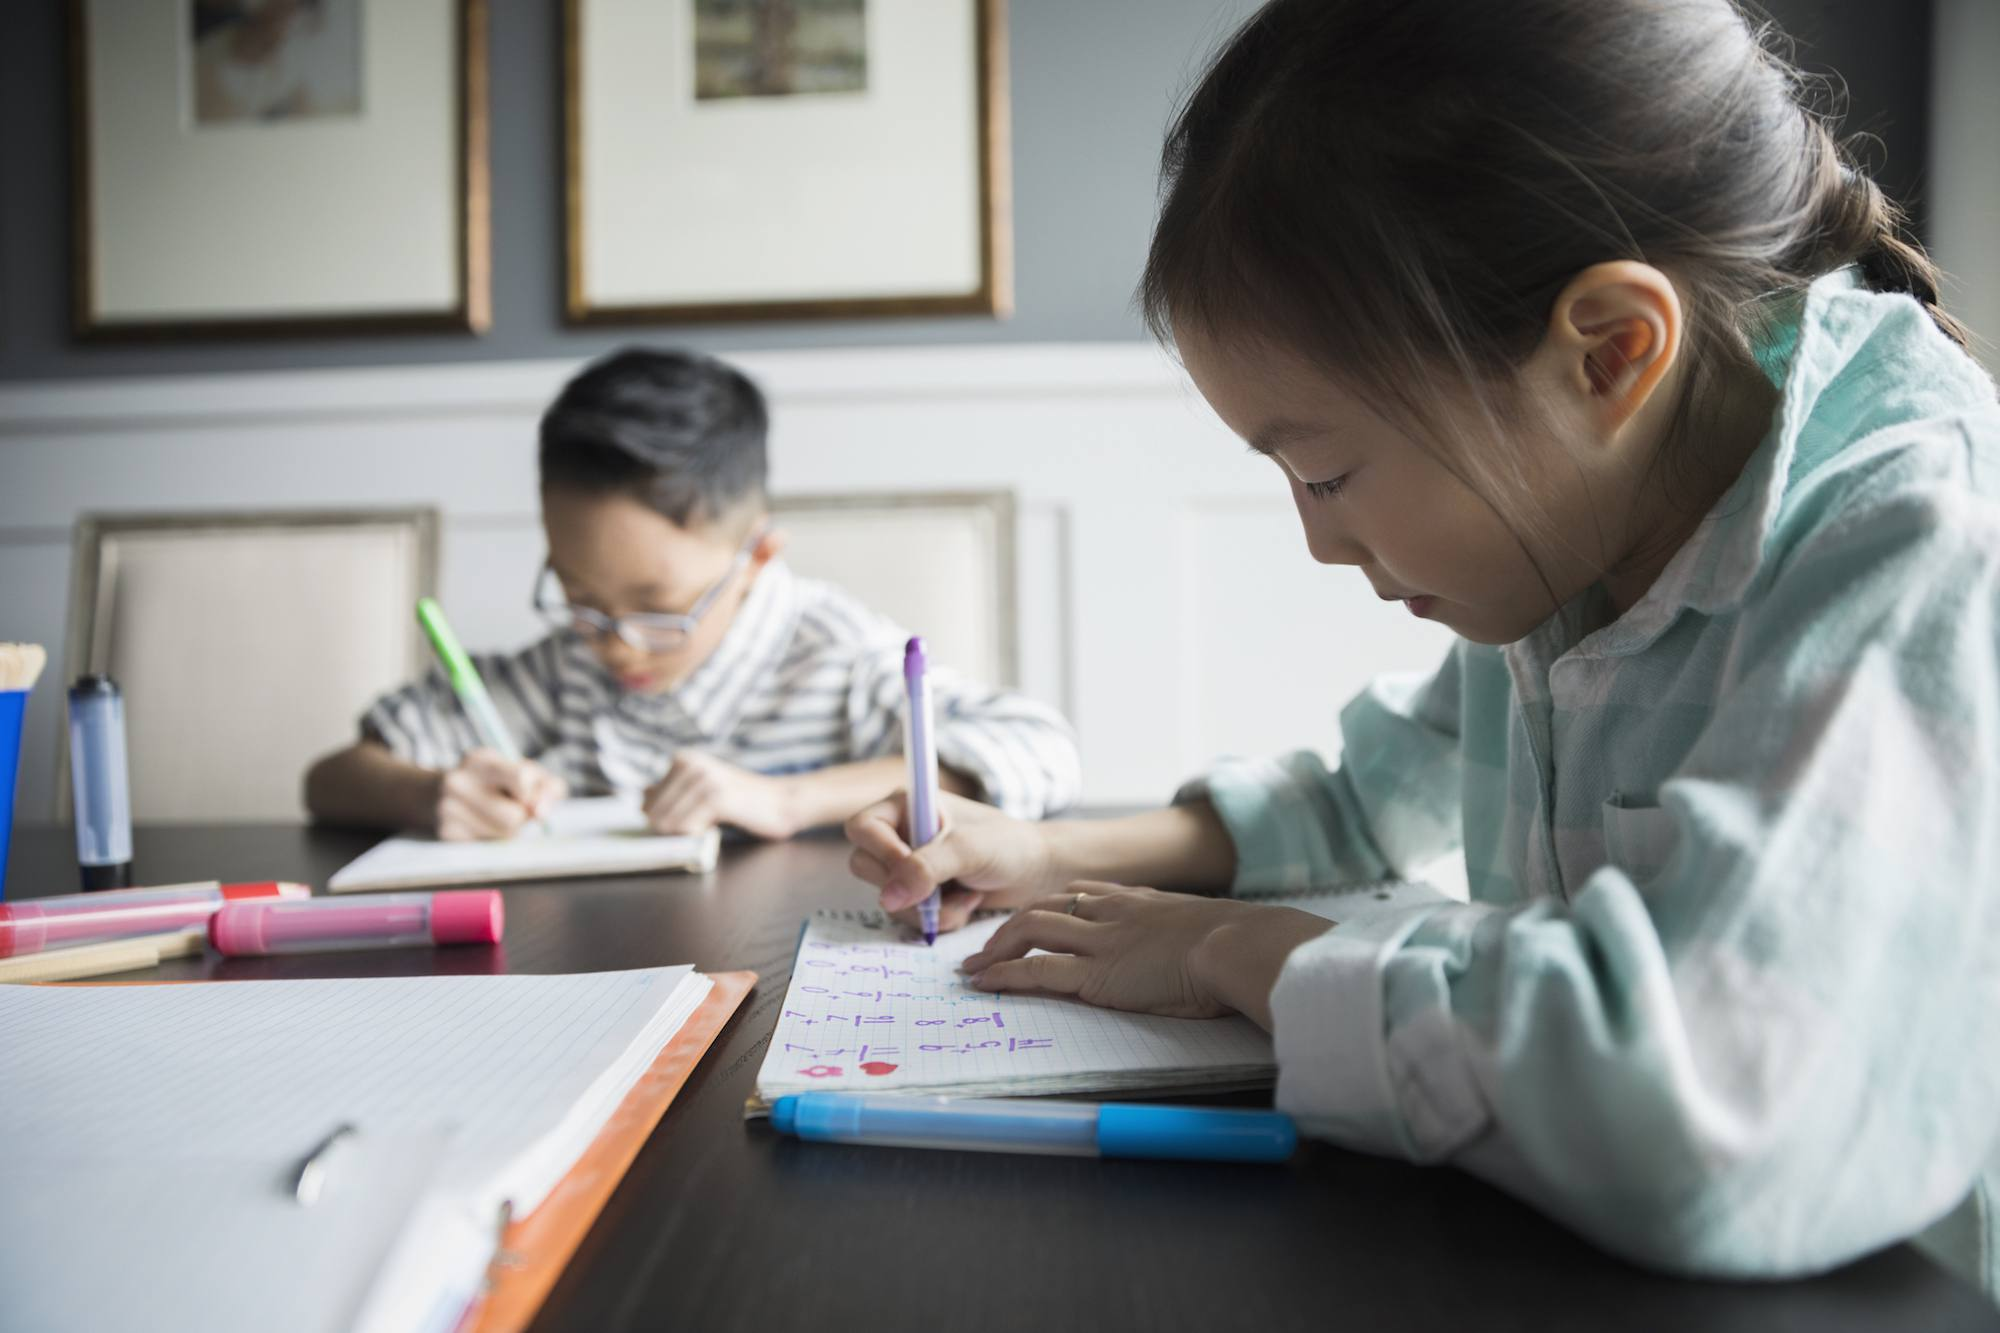 Helpful Concepts for Improving Students' Math Skills